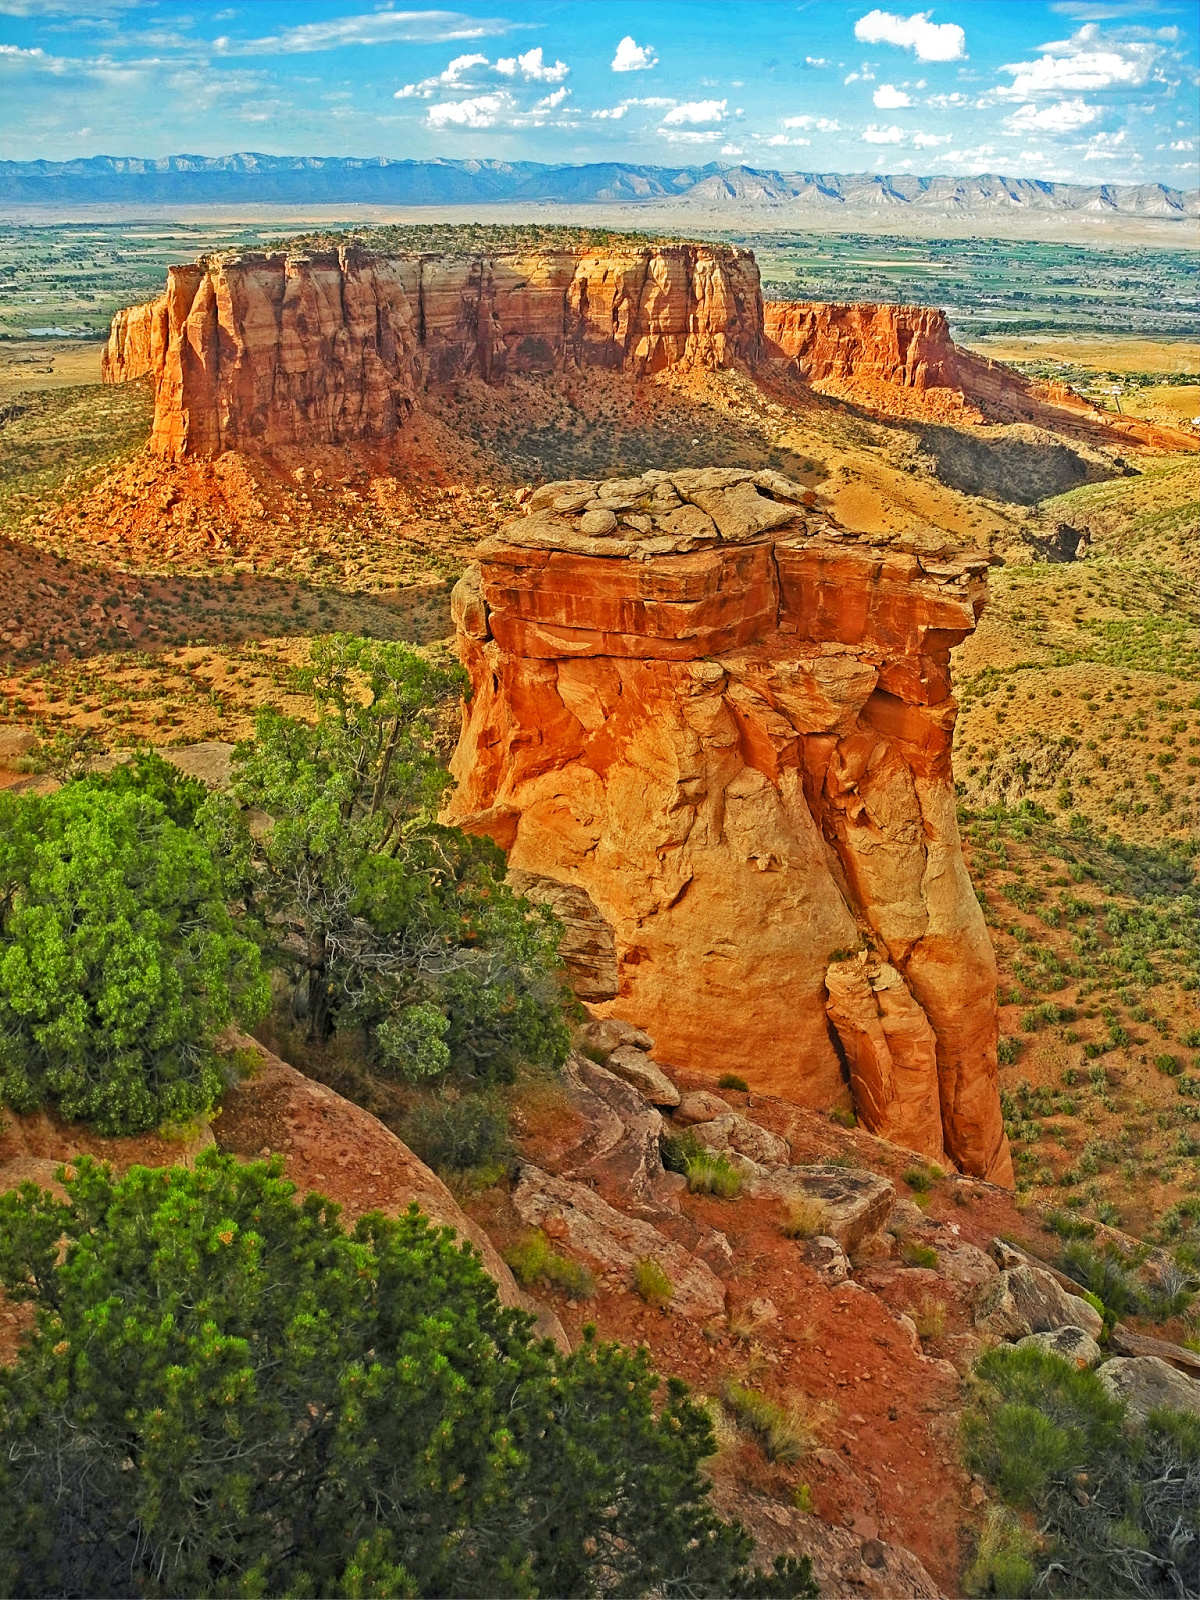 Every way you turn in Colorado National Monument, the rocks just shine against the blue sky.